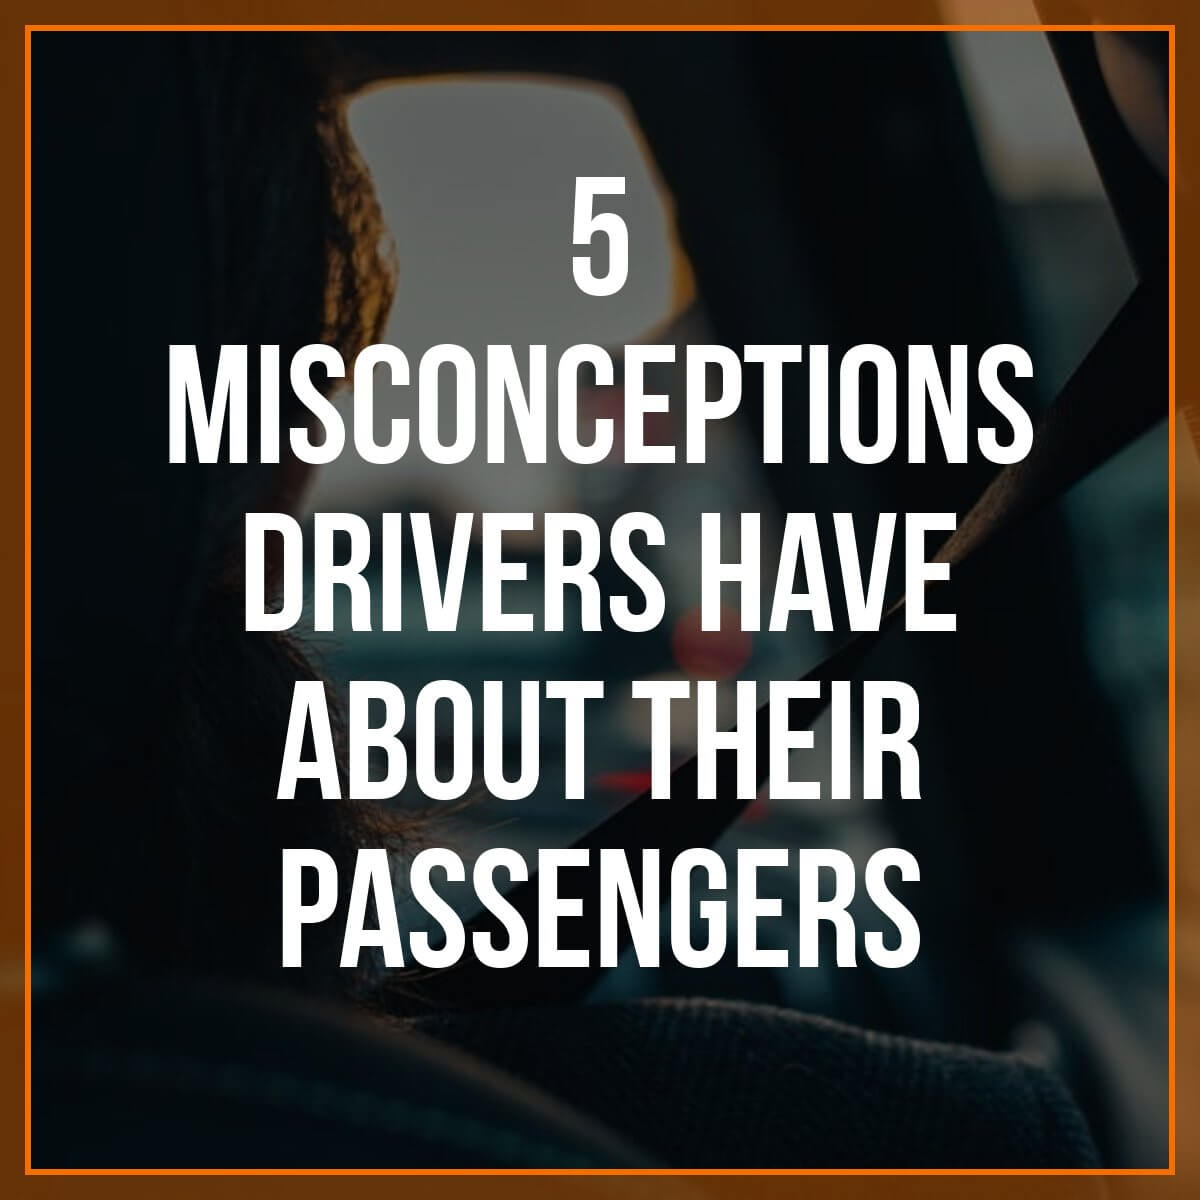 When drivers first start driving, there are plenty of misconceptions they have about passengers. Here are typical driver misconceptions & how to handle them